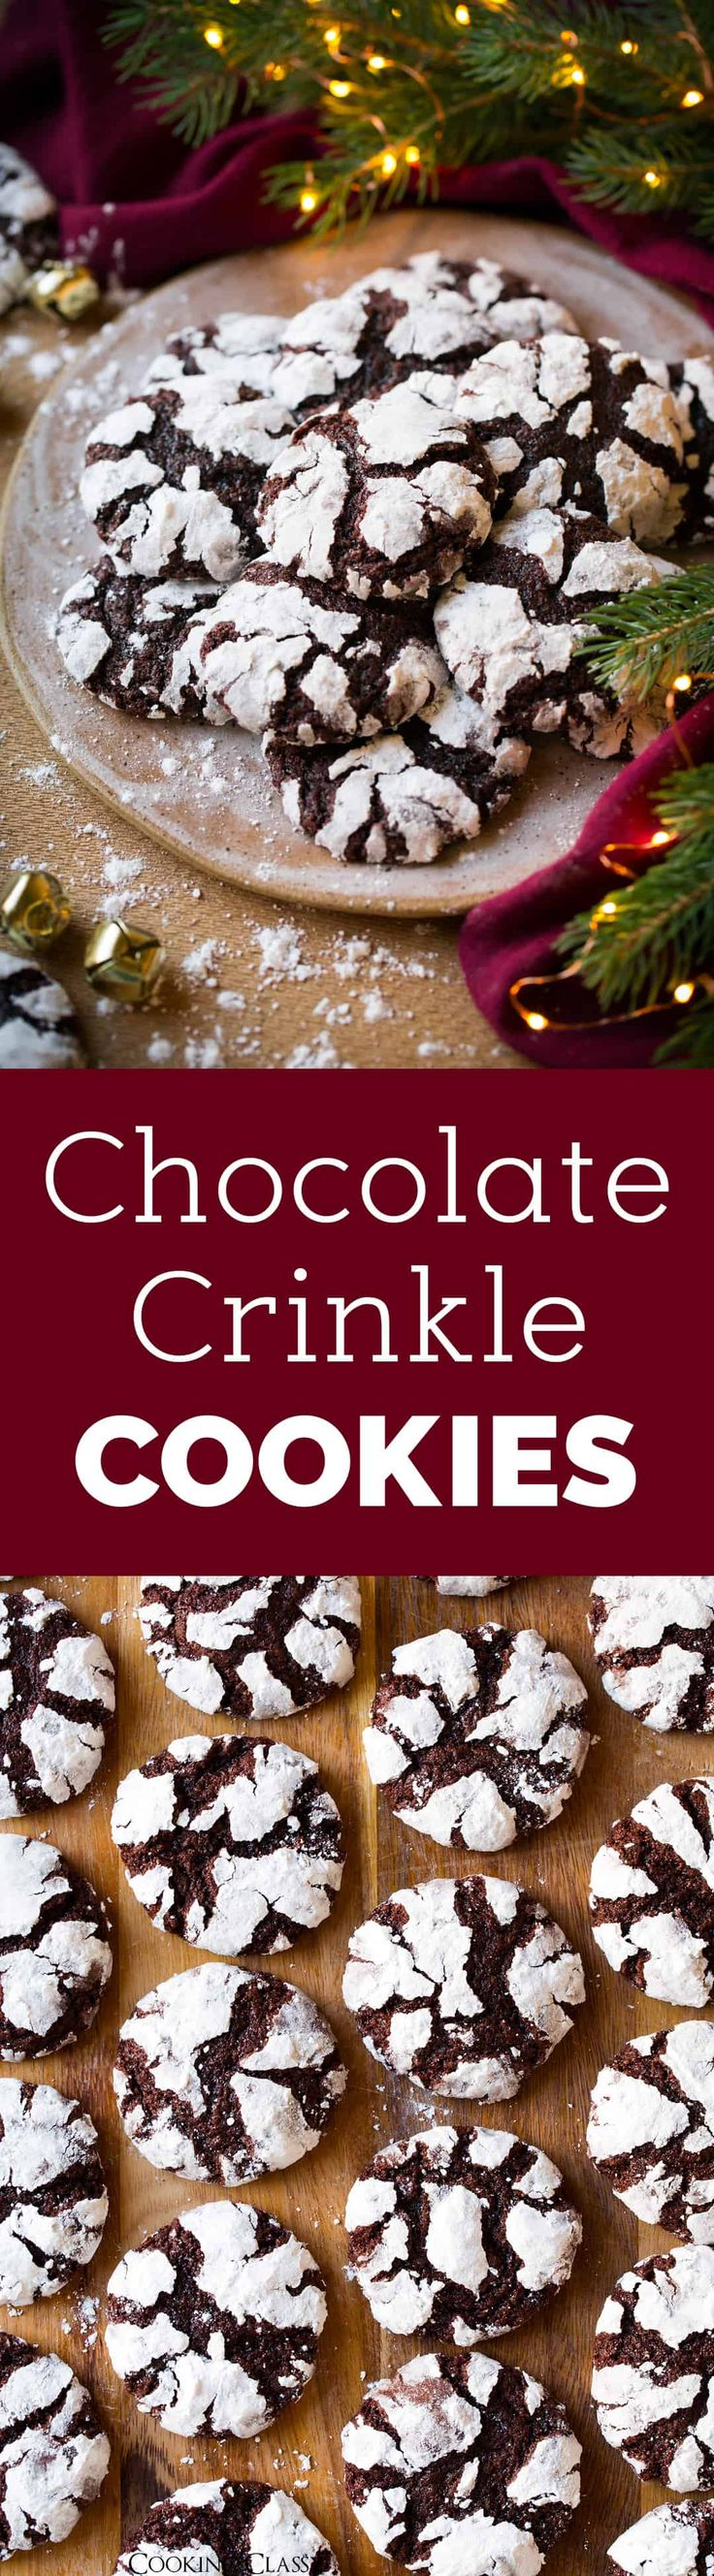 The BEST Chocolate Crinkle Cookies - the cookie we all love! Perfectly soft, tender and chewy. A lot like a brownie but in cookie form - in other words these cookies are sure to satisfy! #christmascookies #cookies #dessert #chocolate #christmas #crinklecookies via @cookingclassy